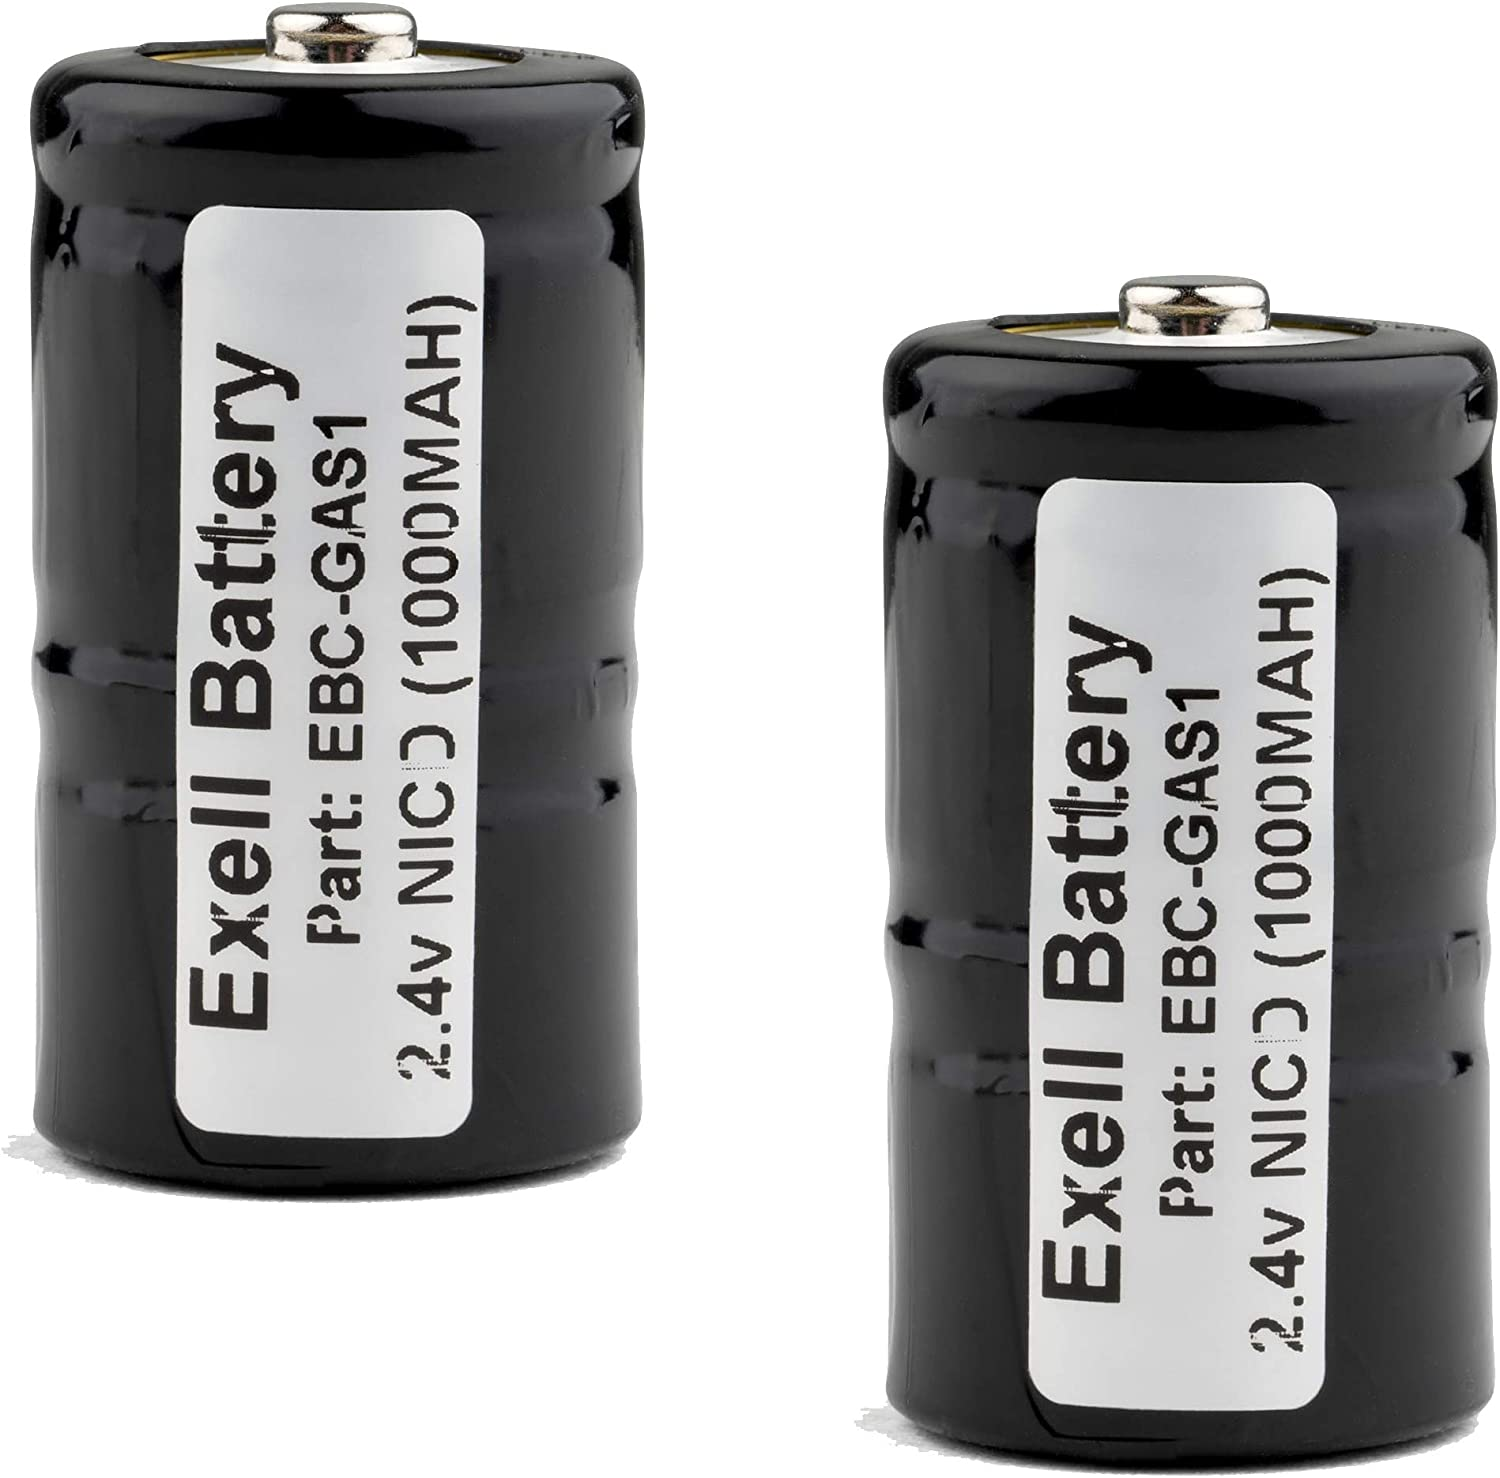 2 Pack TIF8806A TIF8900 TIF 405421 Saft TIF-8800 TIF8800A TIF8850 2.4v 800mah Ni-CD Gas Meter Battery Replacement